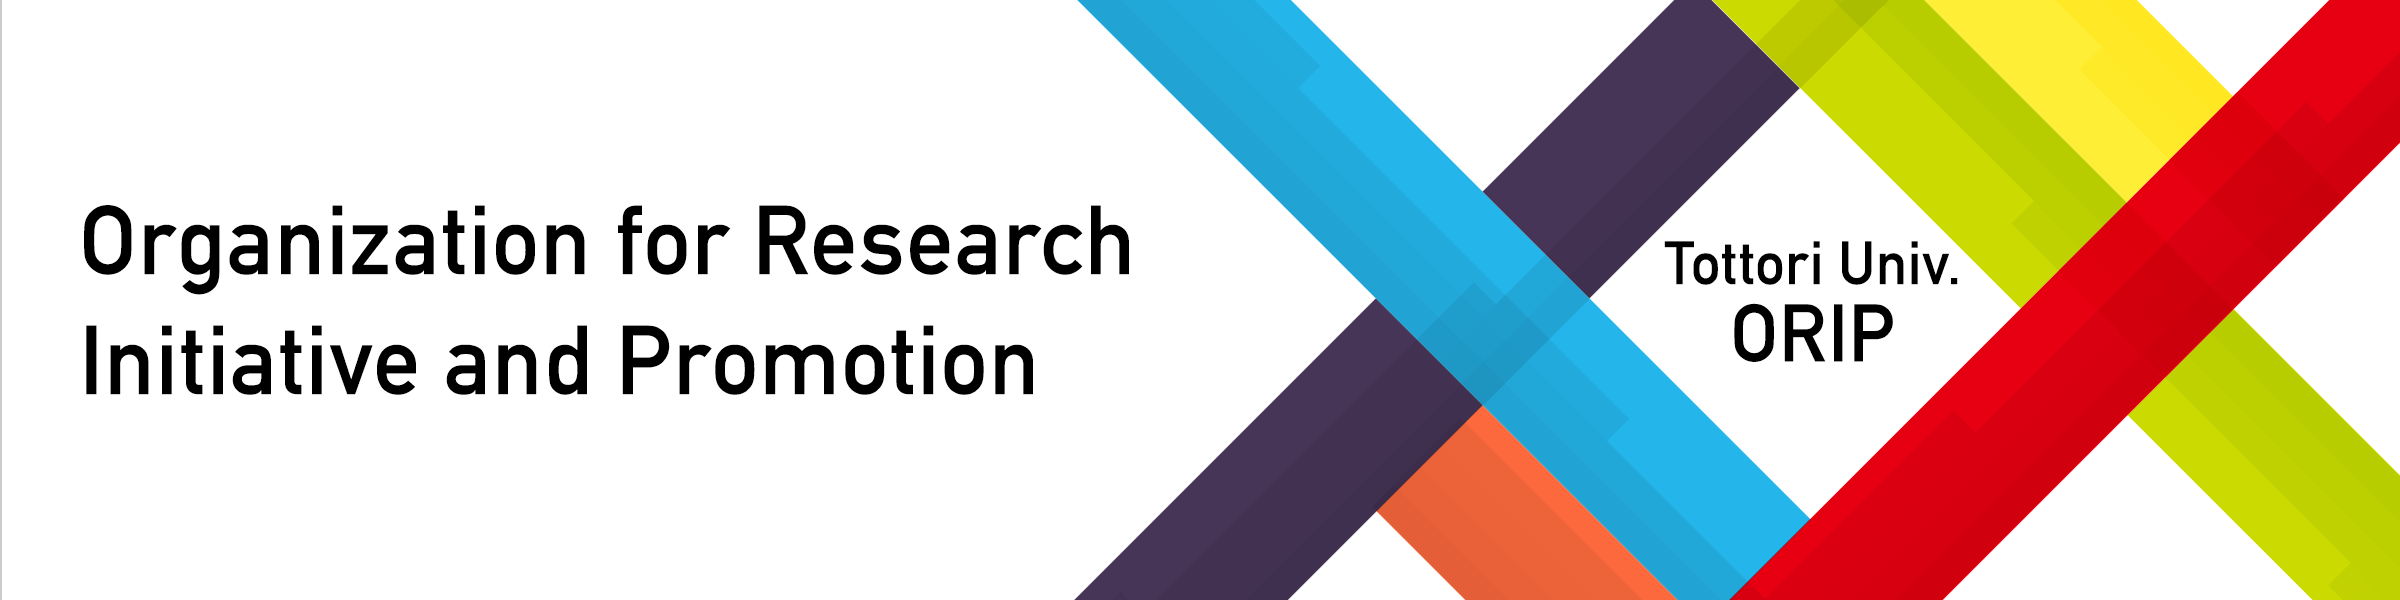 Organization for Research Initiative and Promotion 鳥取大学研究推進機構